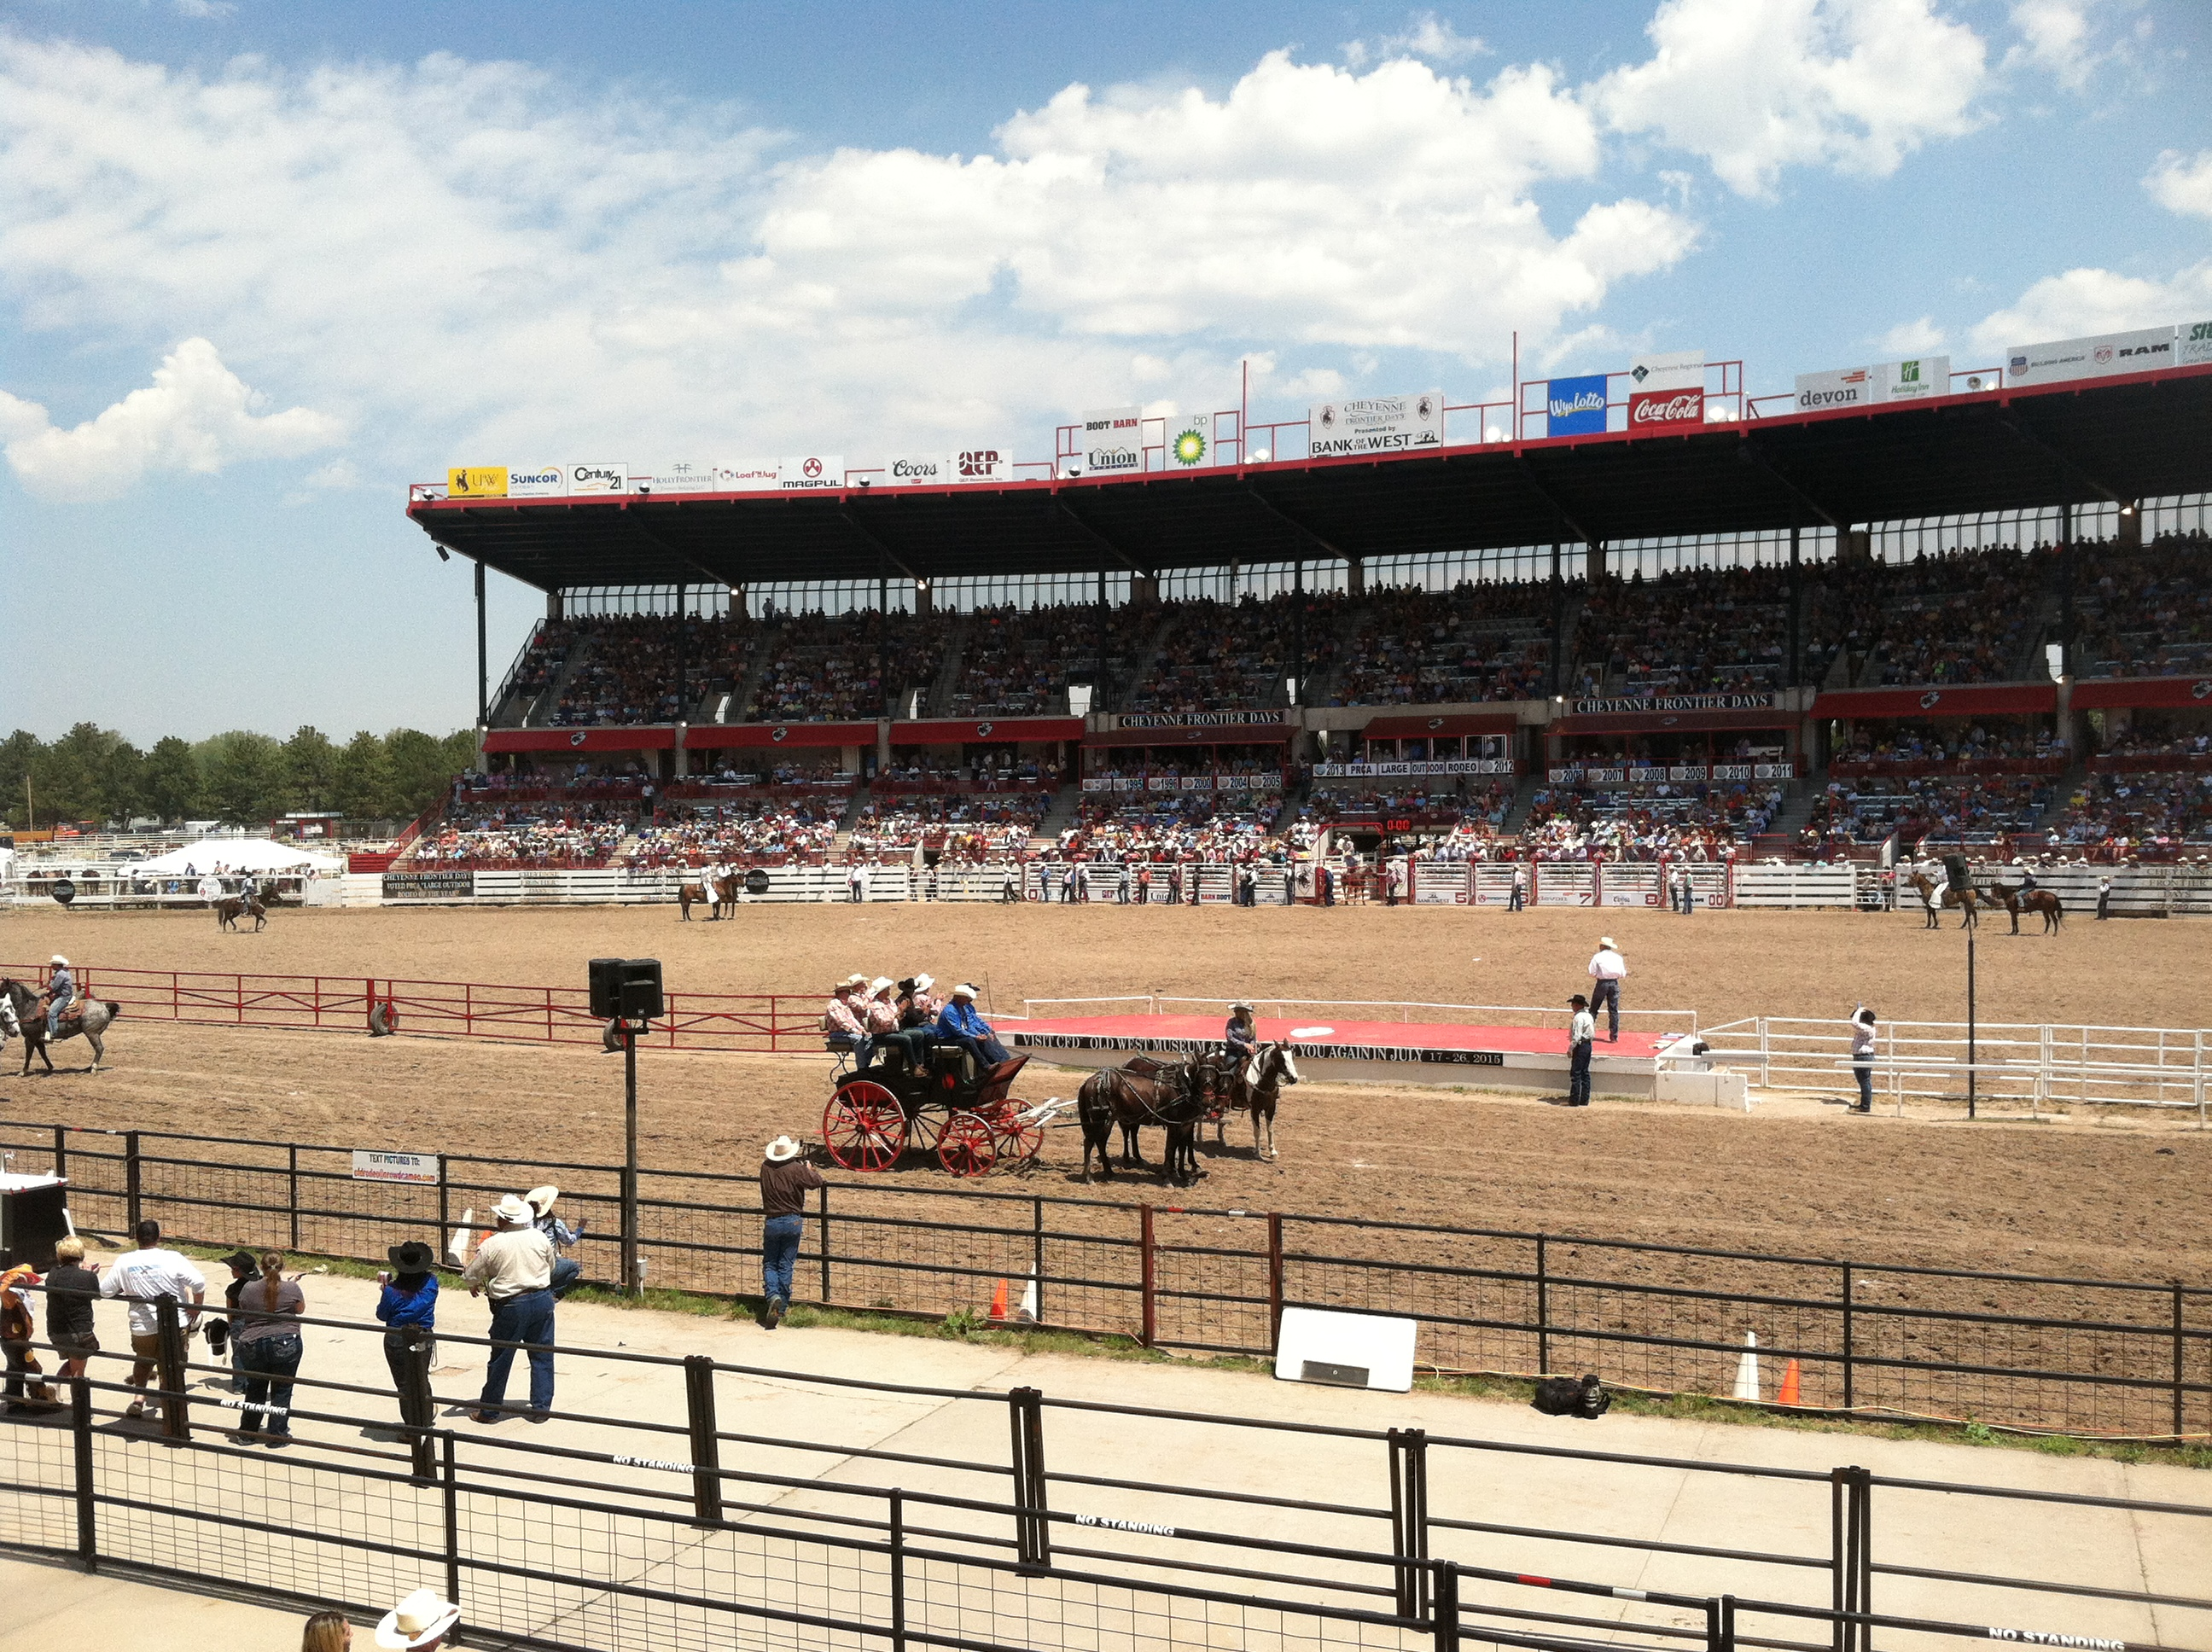 The rodeo in full swing